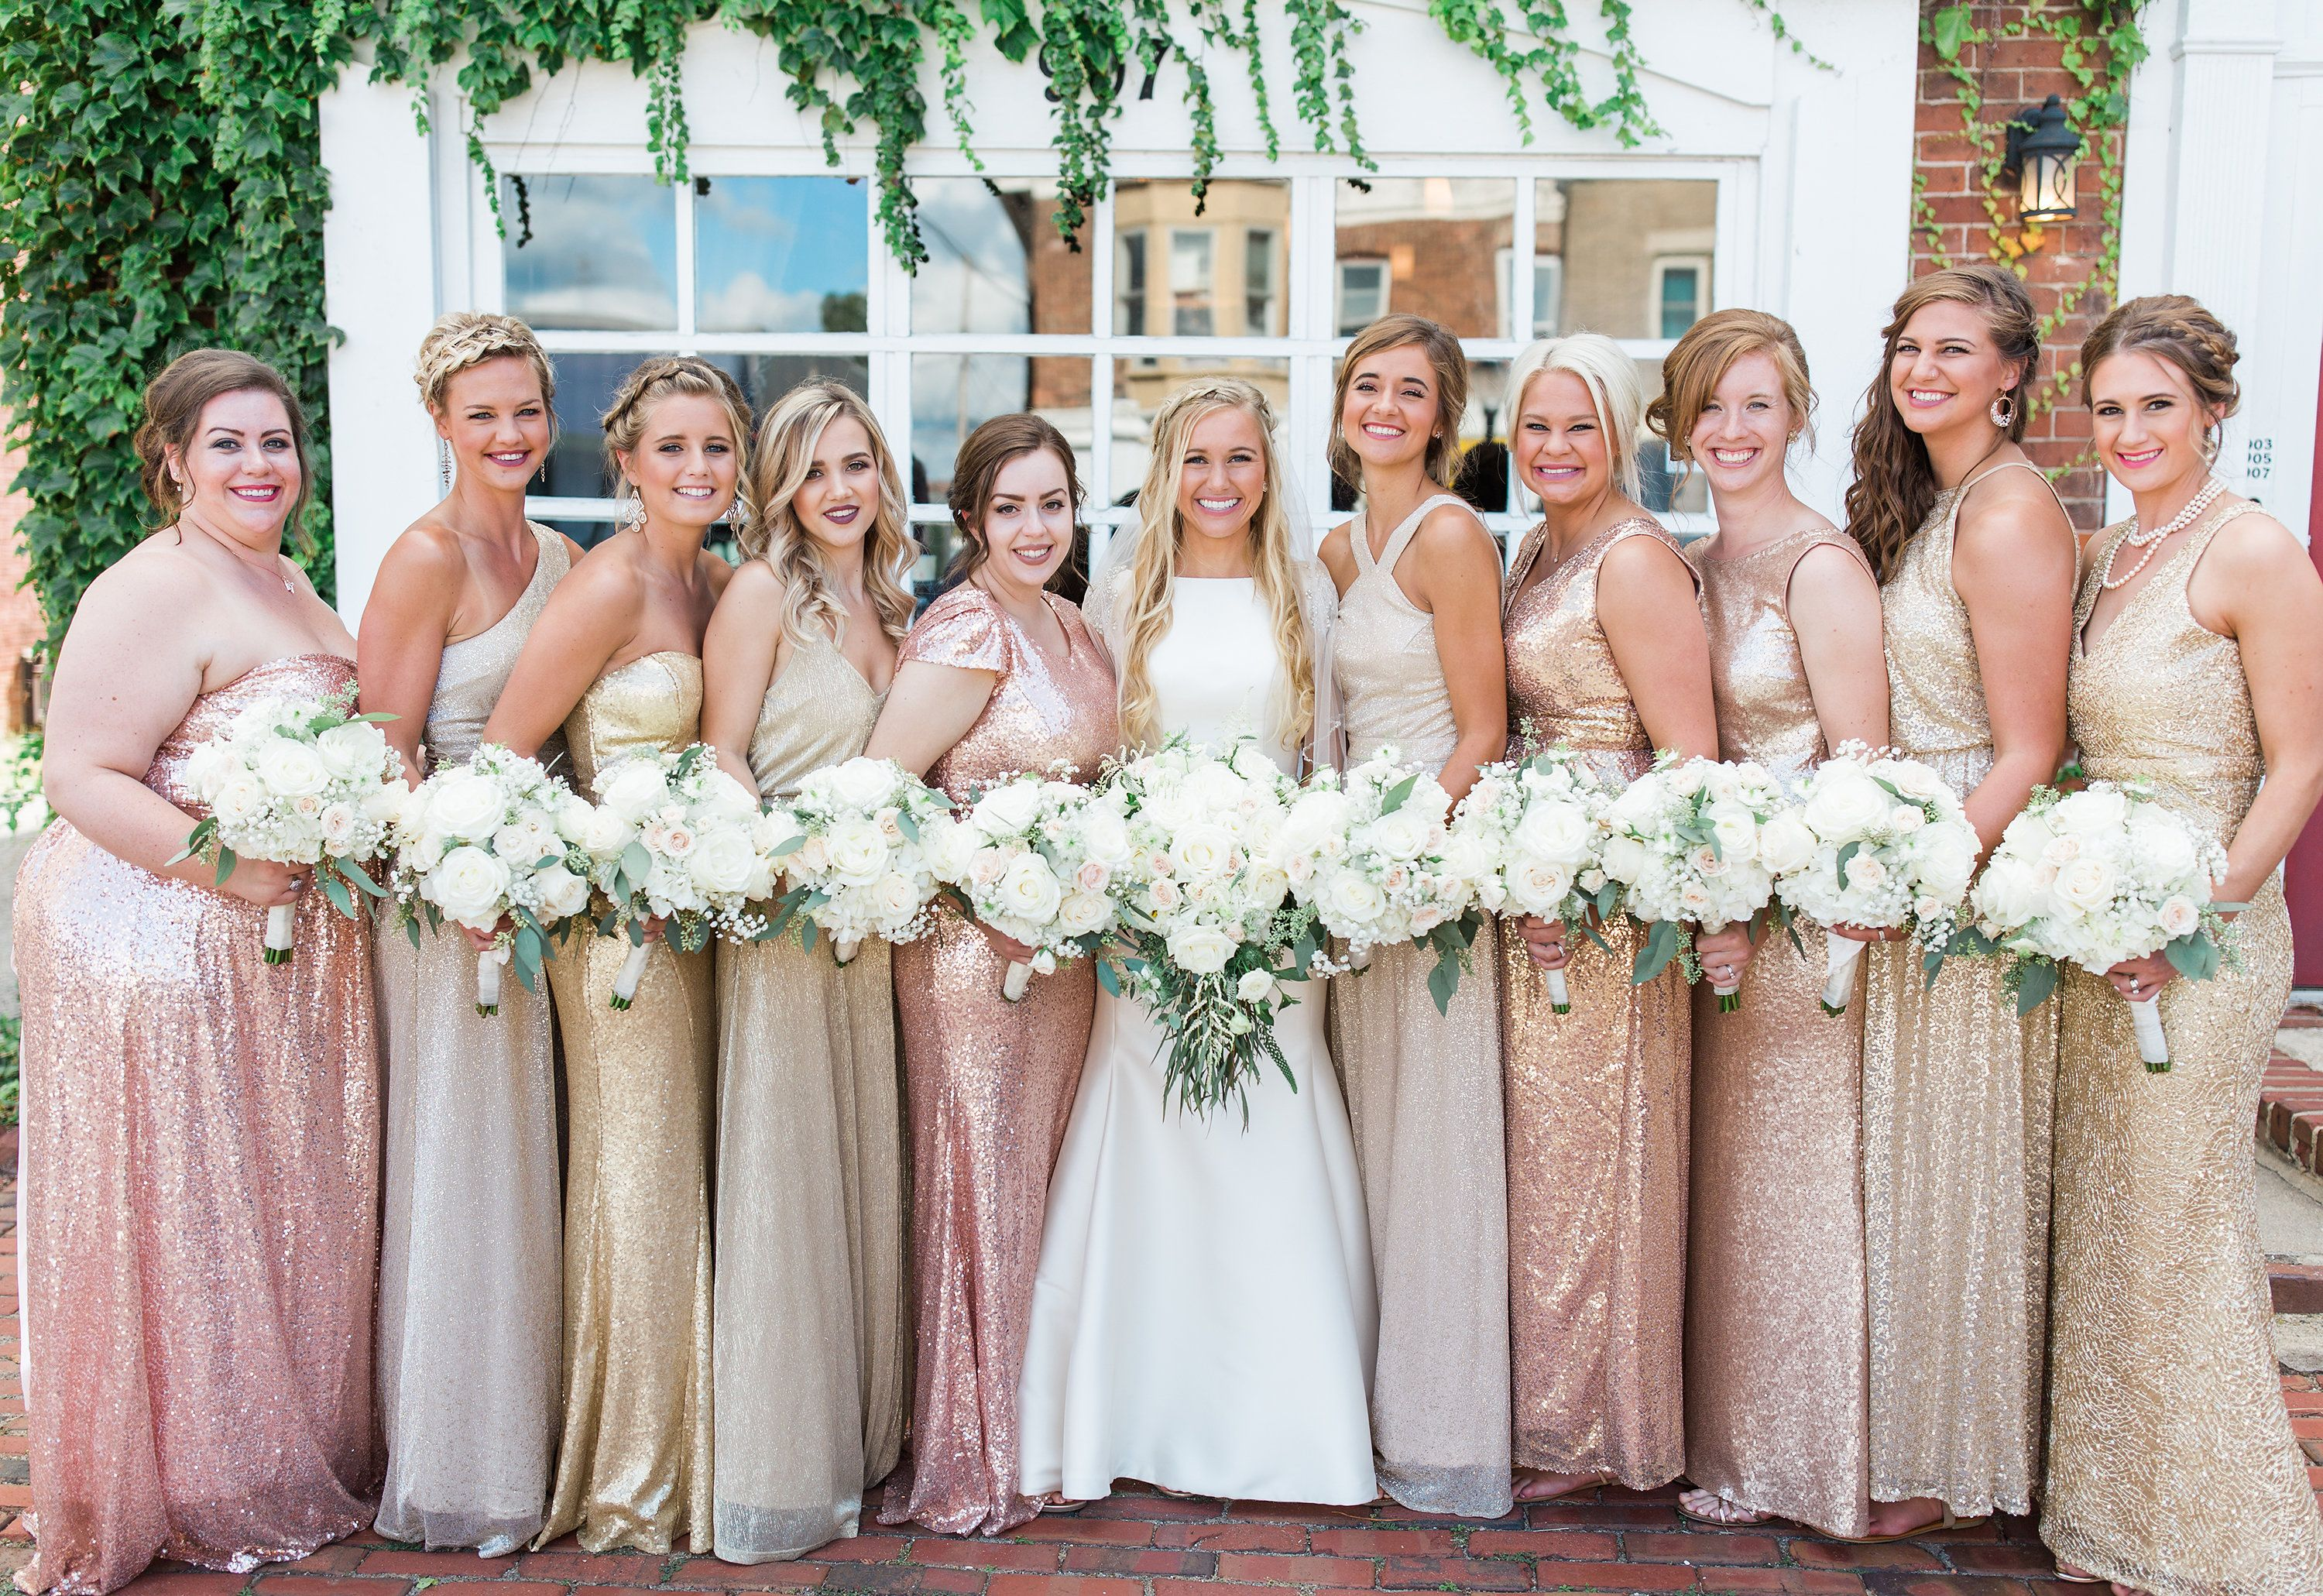 Mismatched Bridesmaid Dresses Rose Gold Gold Champagne Wedding White Flowers Roses Greene Mismatched Bridesmaid Dresses Bridesmaid Brides And Bridesmaids [ 2061 x 3000 Pixel ]